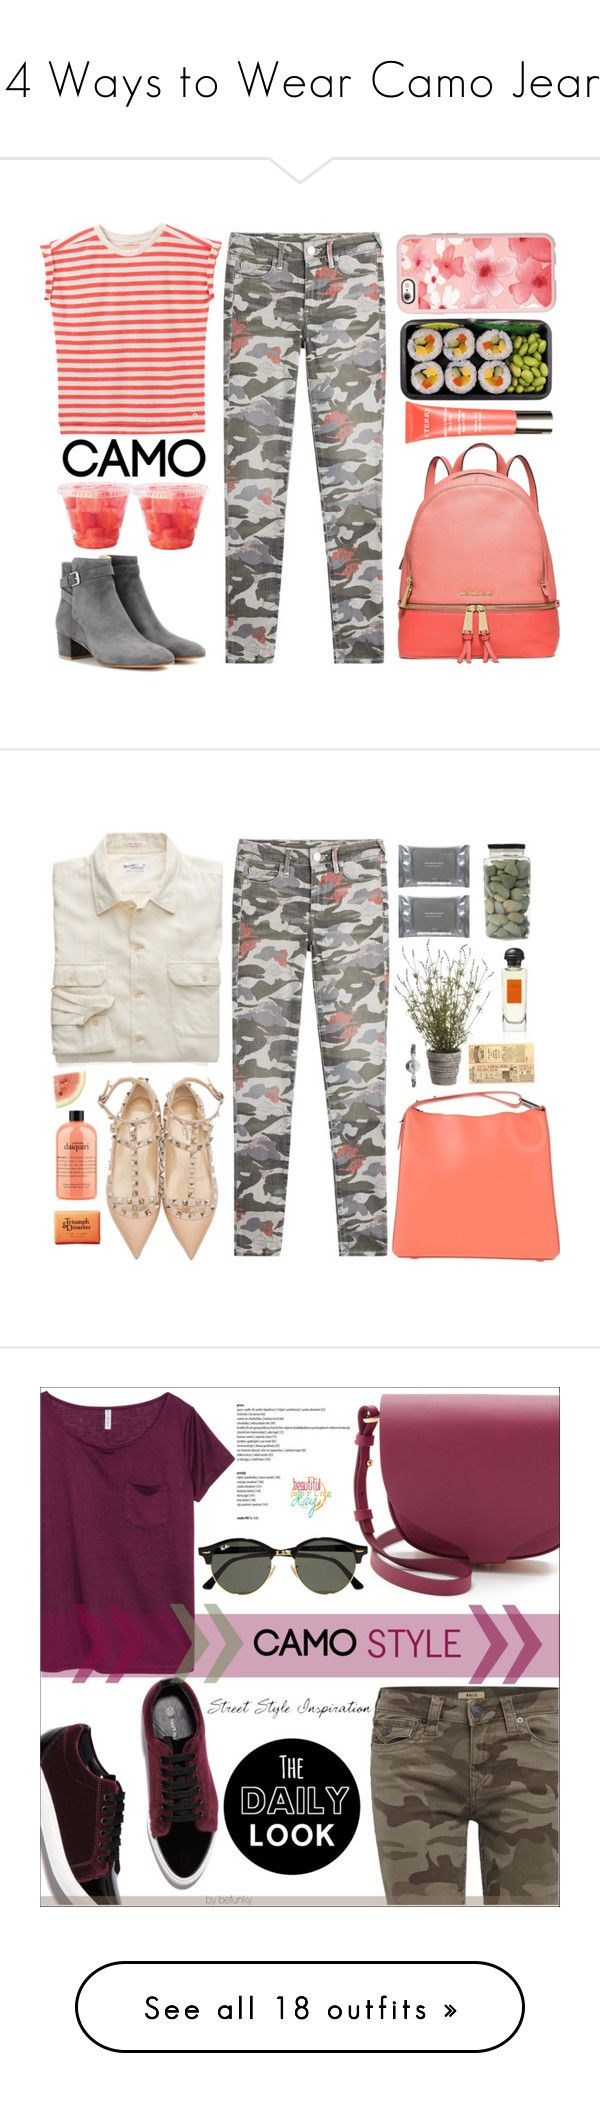 """""""14 Ways to Wear Camo Jeans"""" by polyvore-editorial ❤ liked on Polyvore featuring camostyle, waystowear, camojeans, True Religion, Lee, MICHAEL Michael Kors, Gianvito Rossi, By Terry, Casetify and Allstate Floral"""